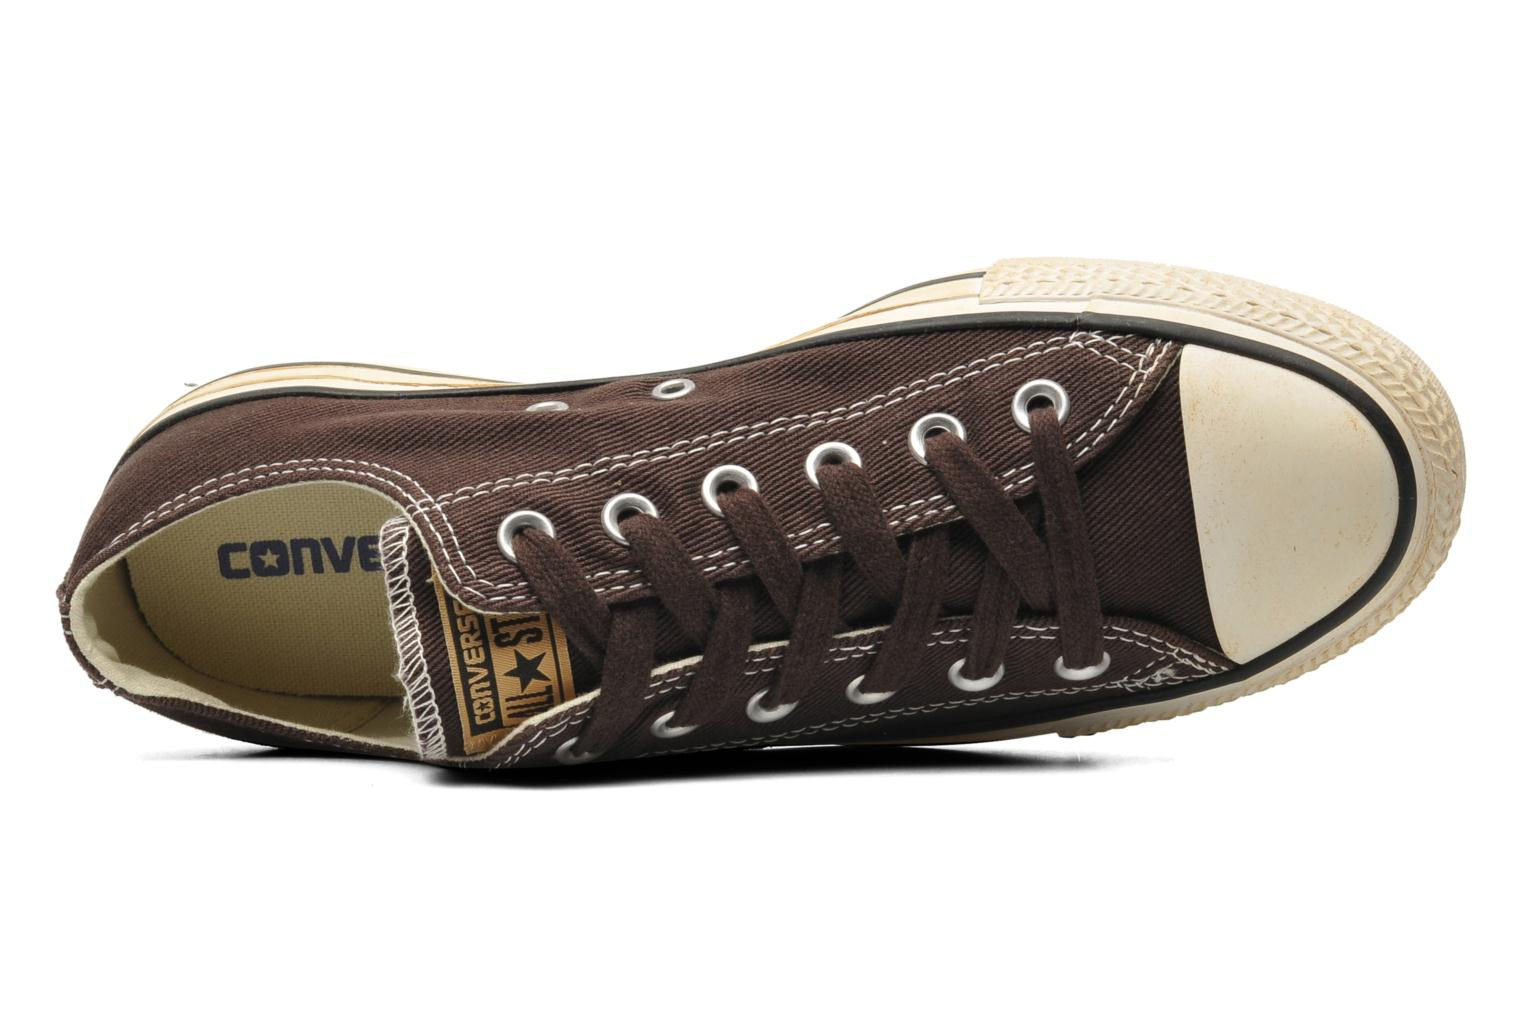 Baskets Converse Chuck Taylor Vintage Washed Twill Ox M Marron vue gauche